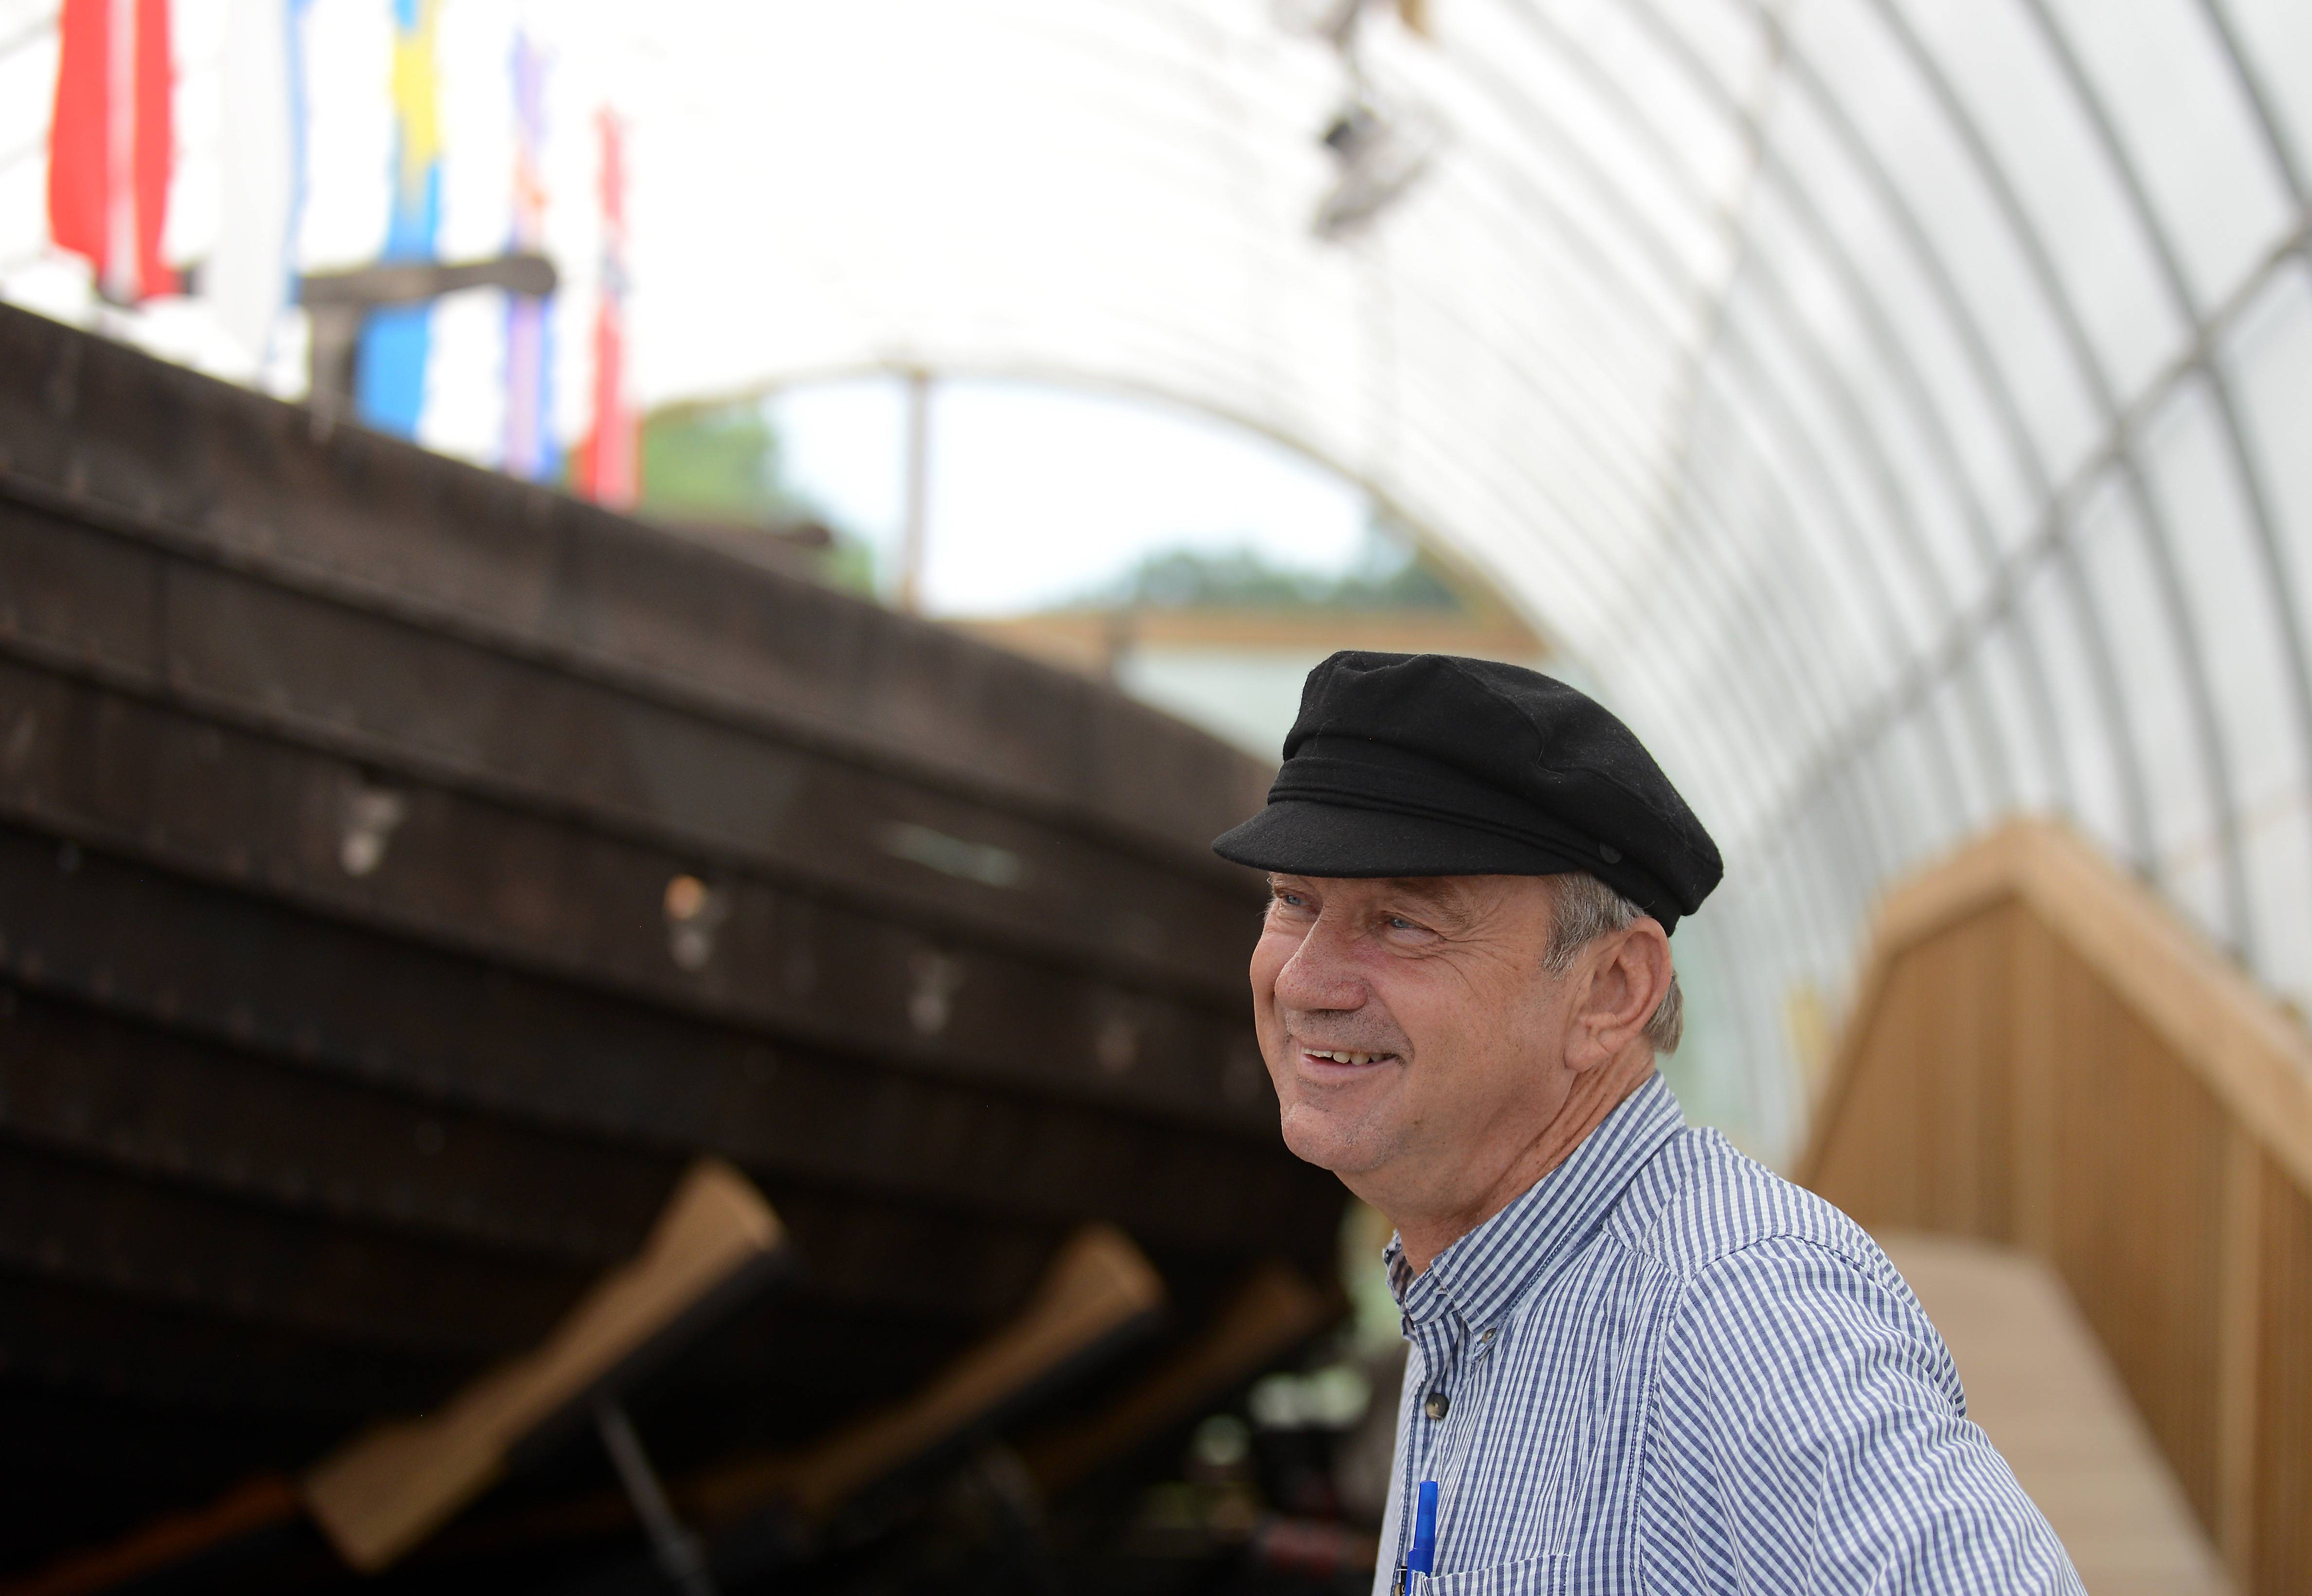 Viking ship's arrival could help suburban vessel